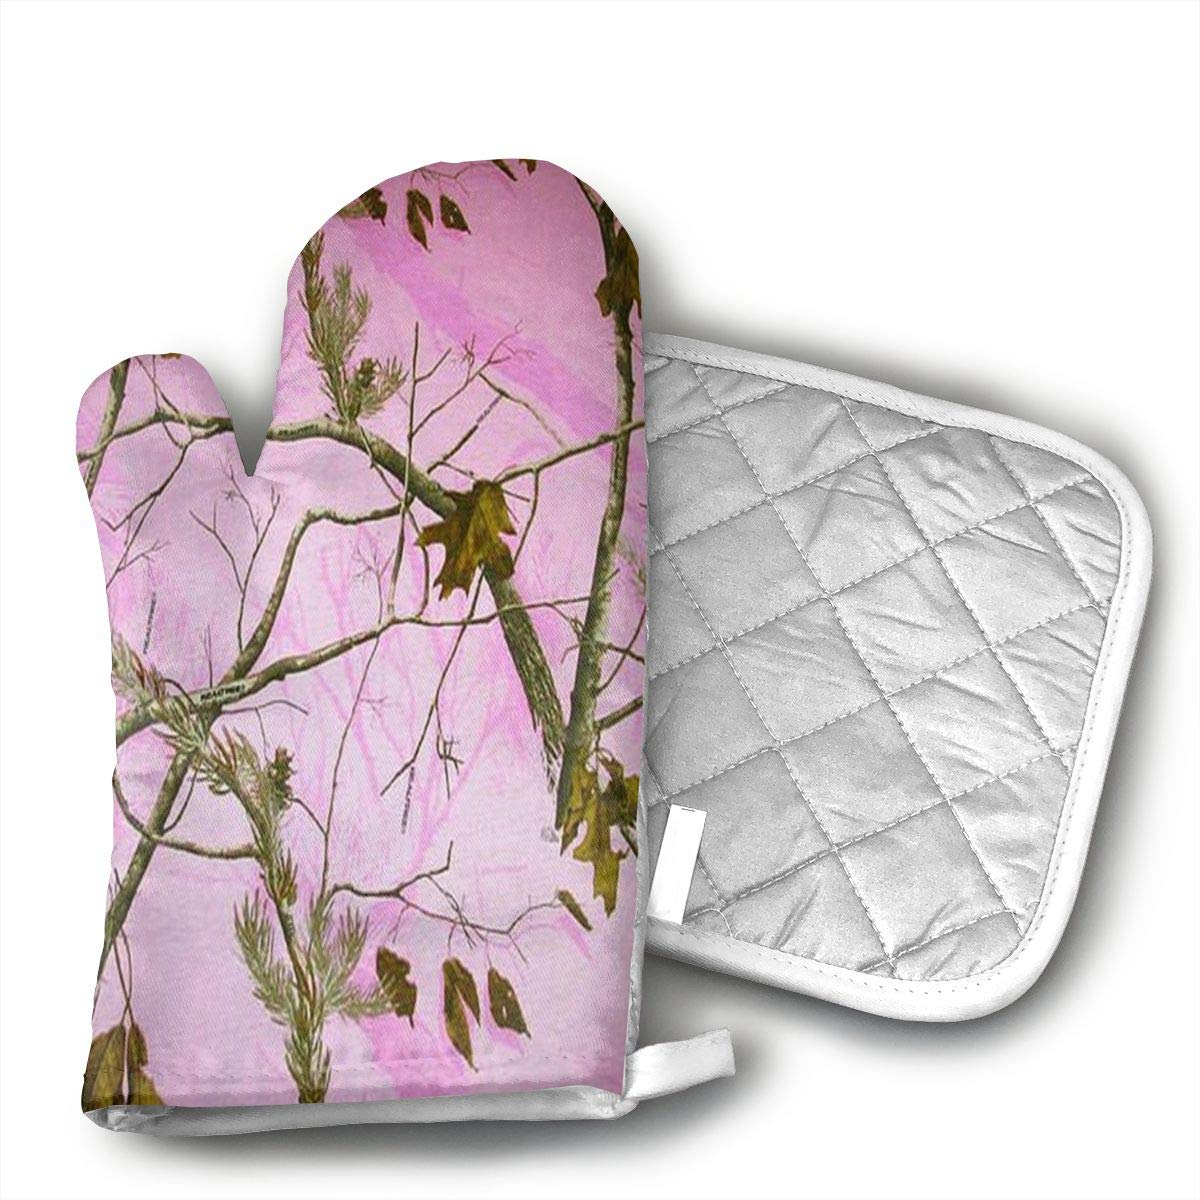 Pink Realtree Camo Kitchen Potholder - Heat Resistant Oven Gloves to Protect Hands and Surfaces with Non-Slip Grip,Ideal for Handling Hot Cookware Items.